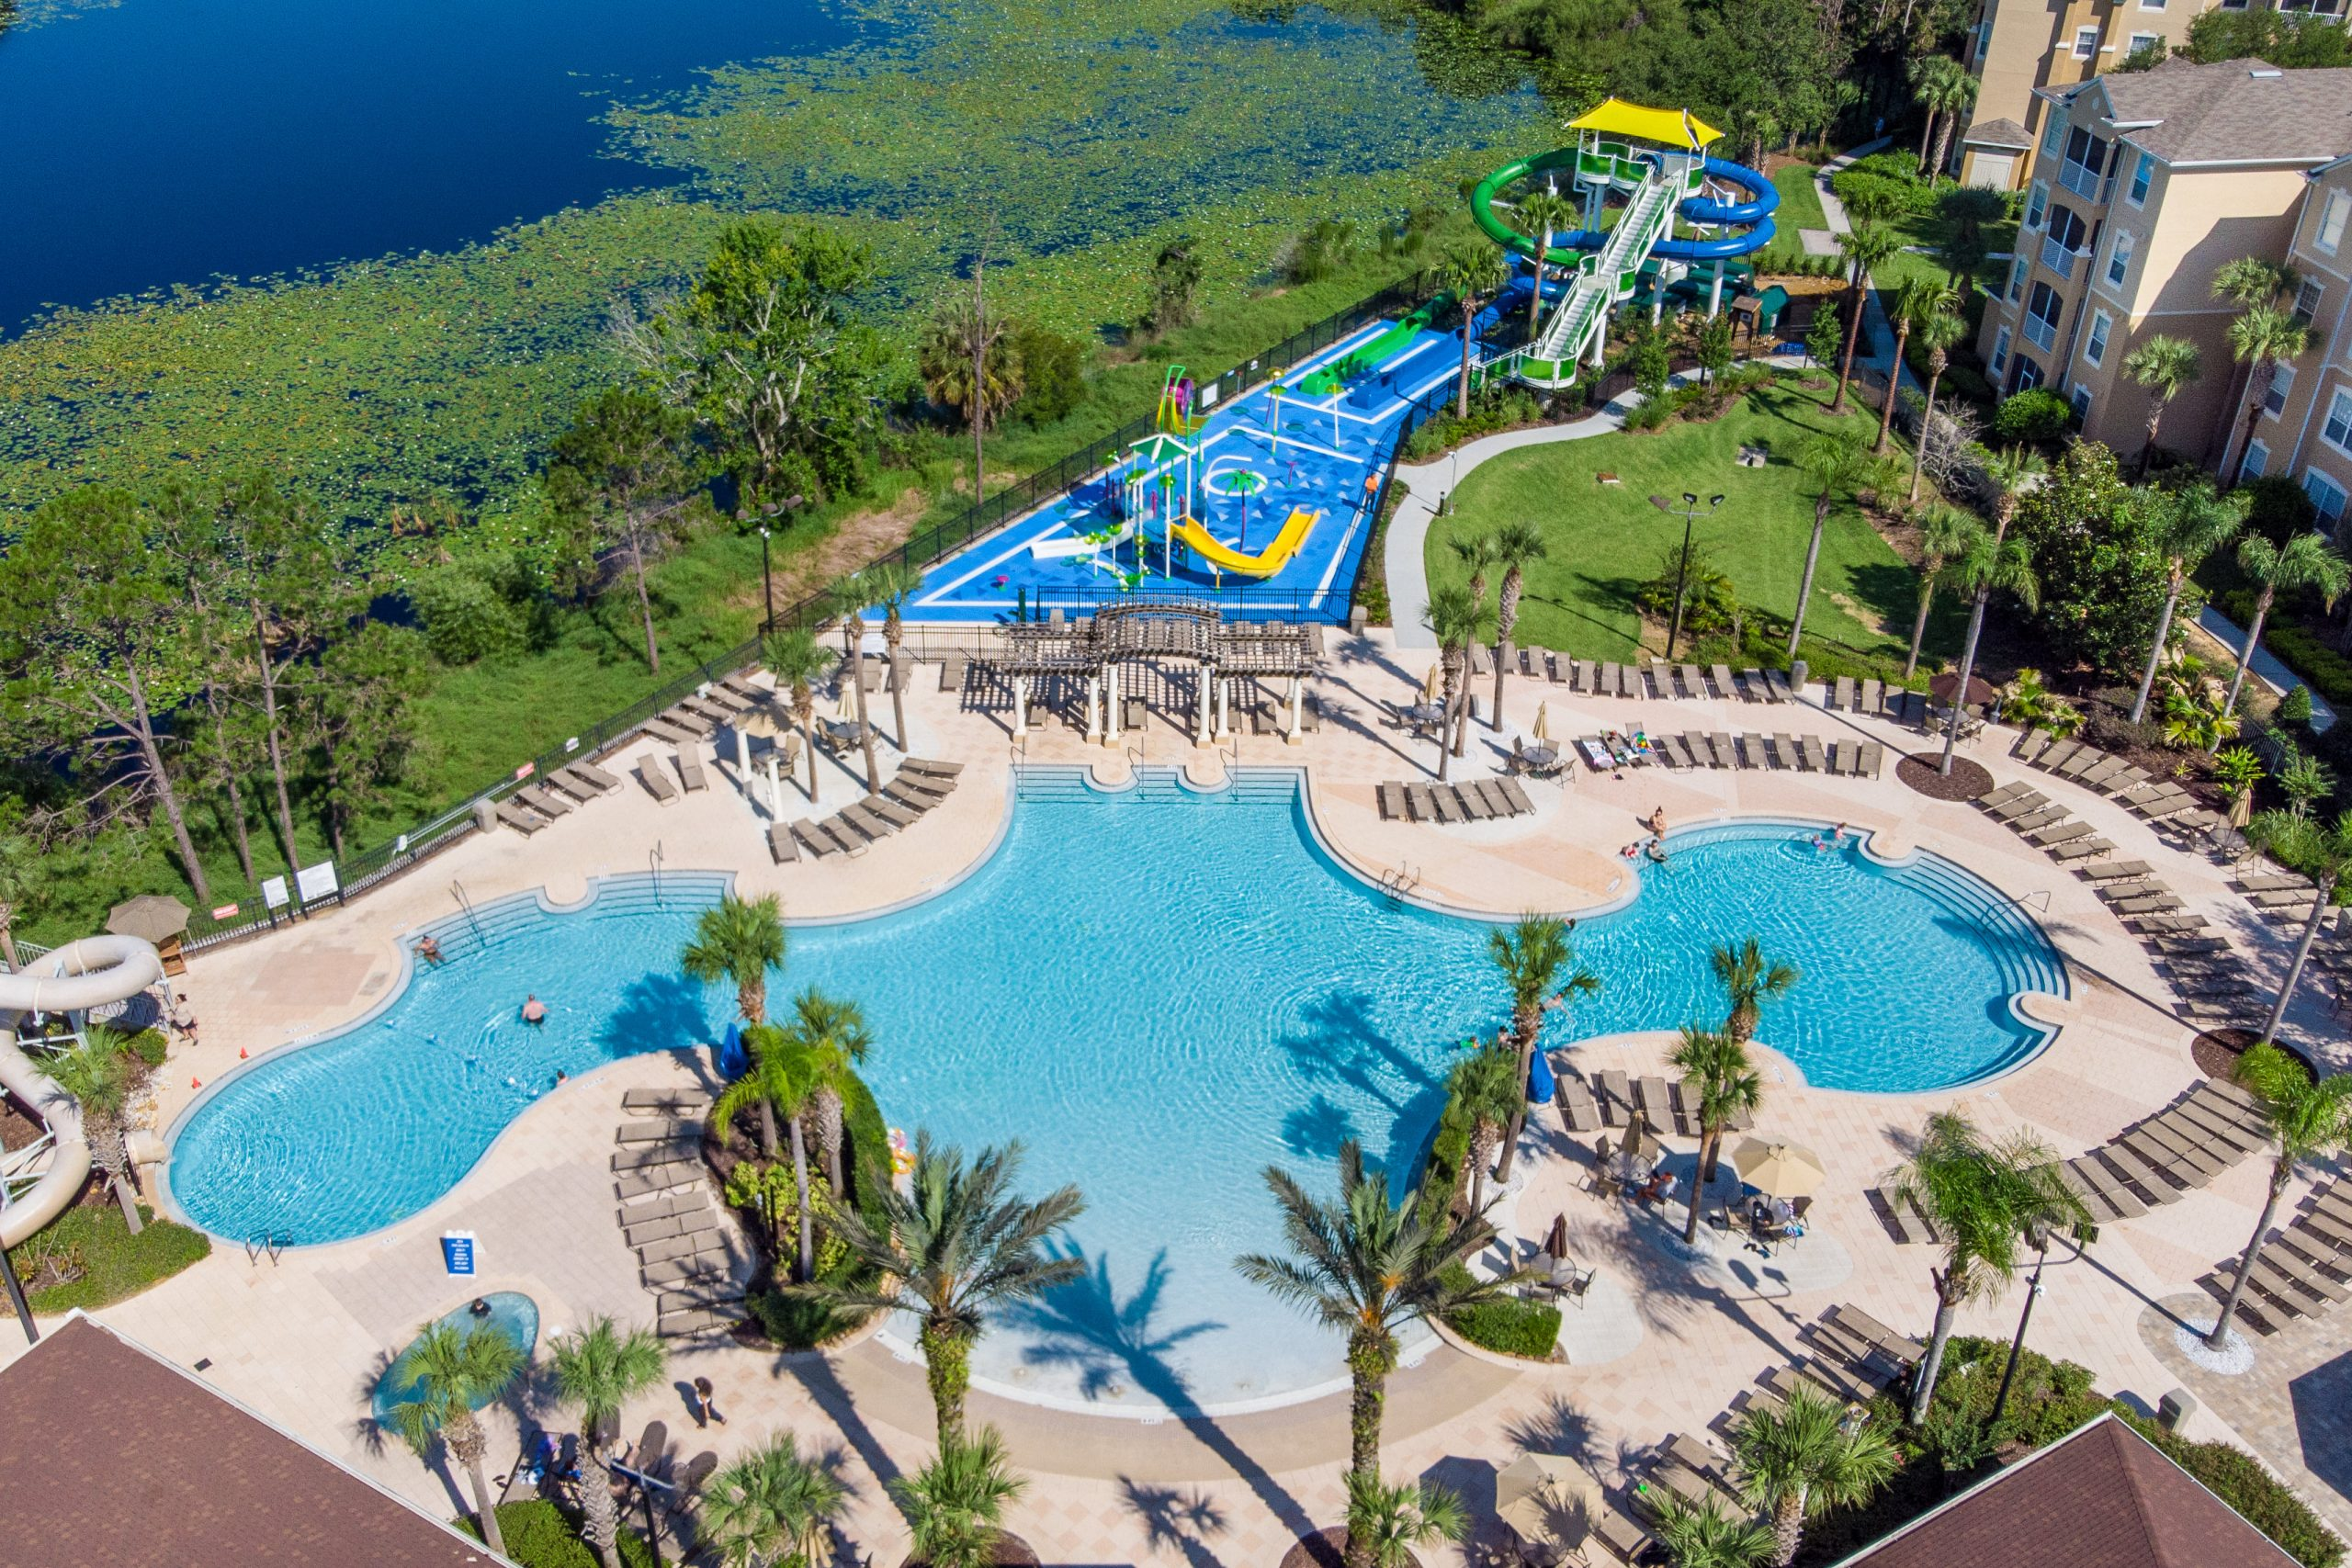 A birdseye view of a giant pool and waterpark next to the water to the right and the resort buildings to the left